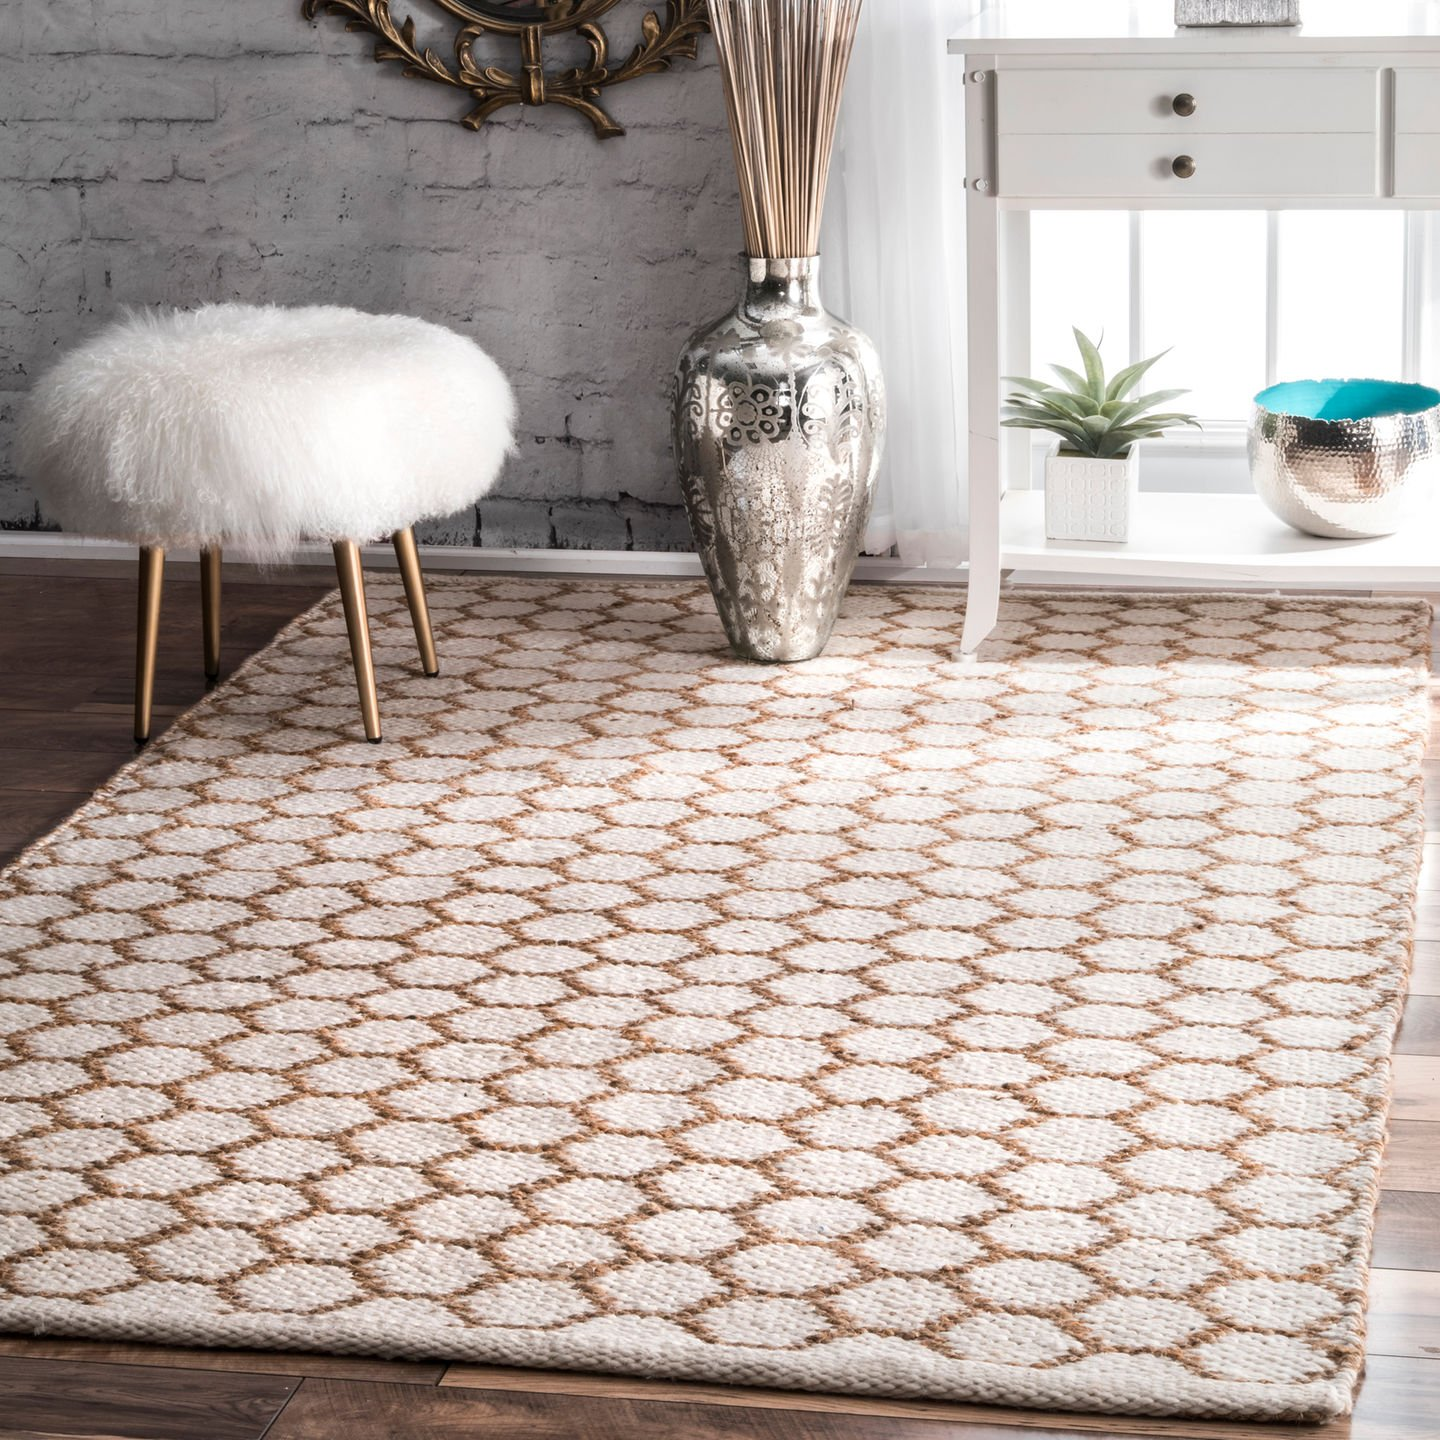 nuLOOM Alisha Honeycomb Reversible Jute Rug, 5 x 8 , Natural